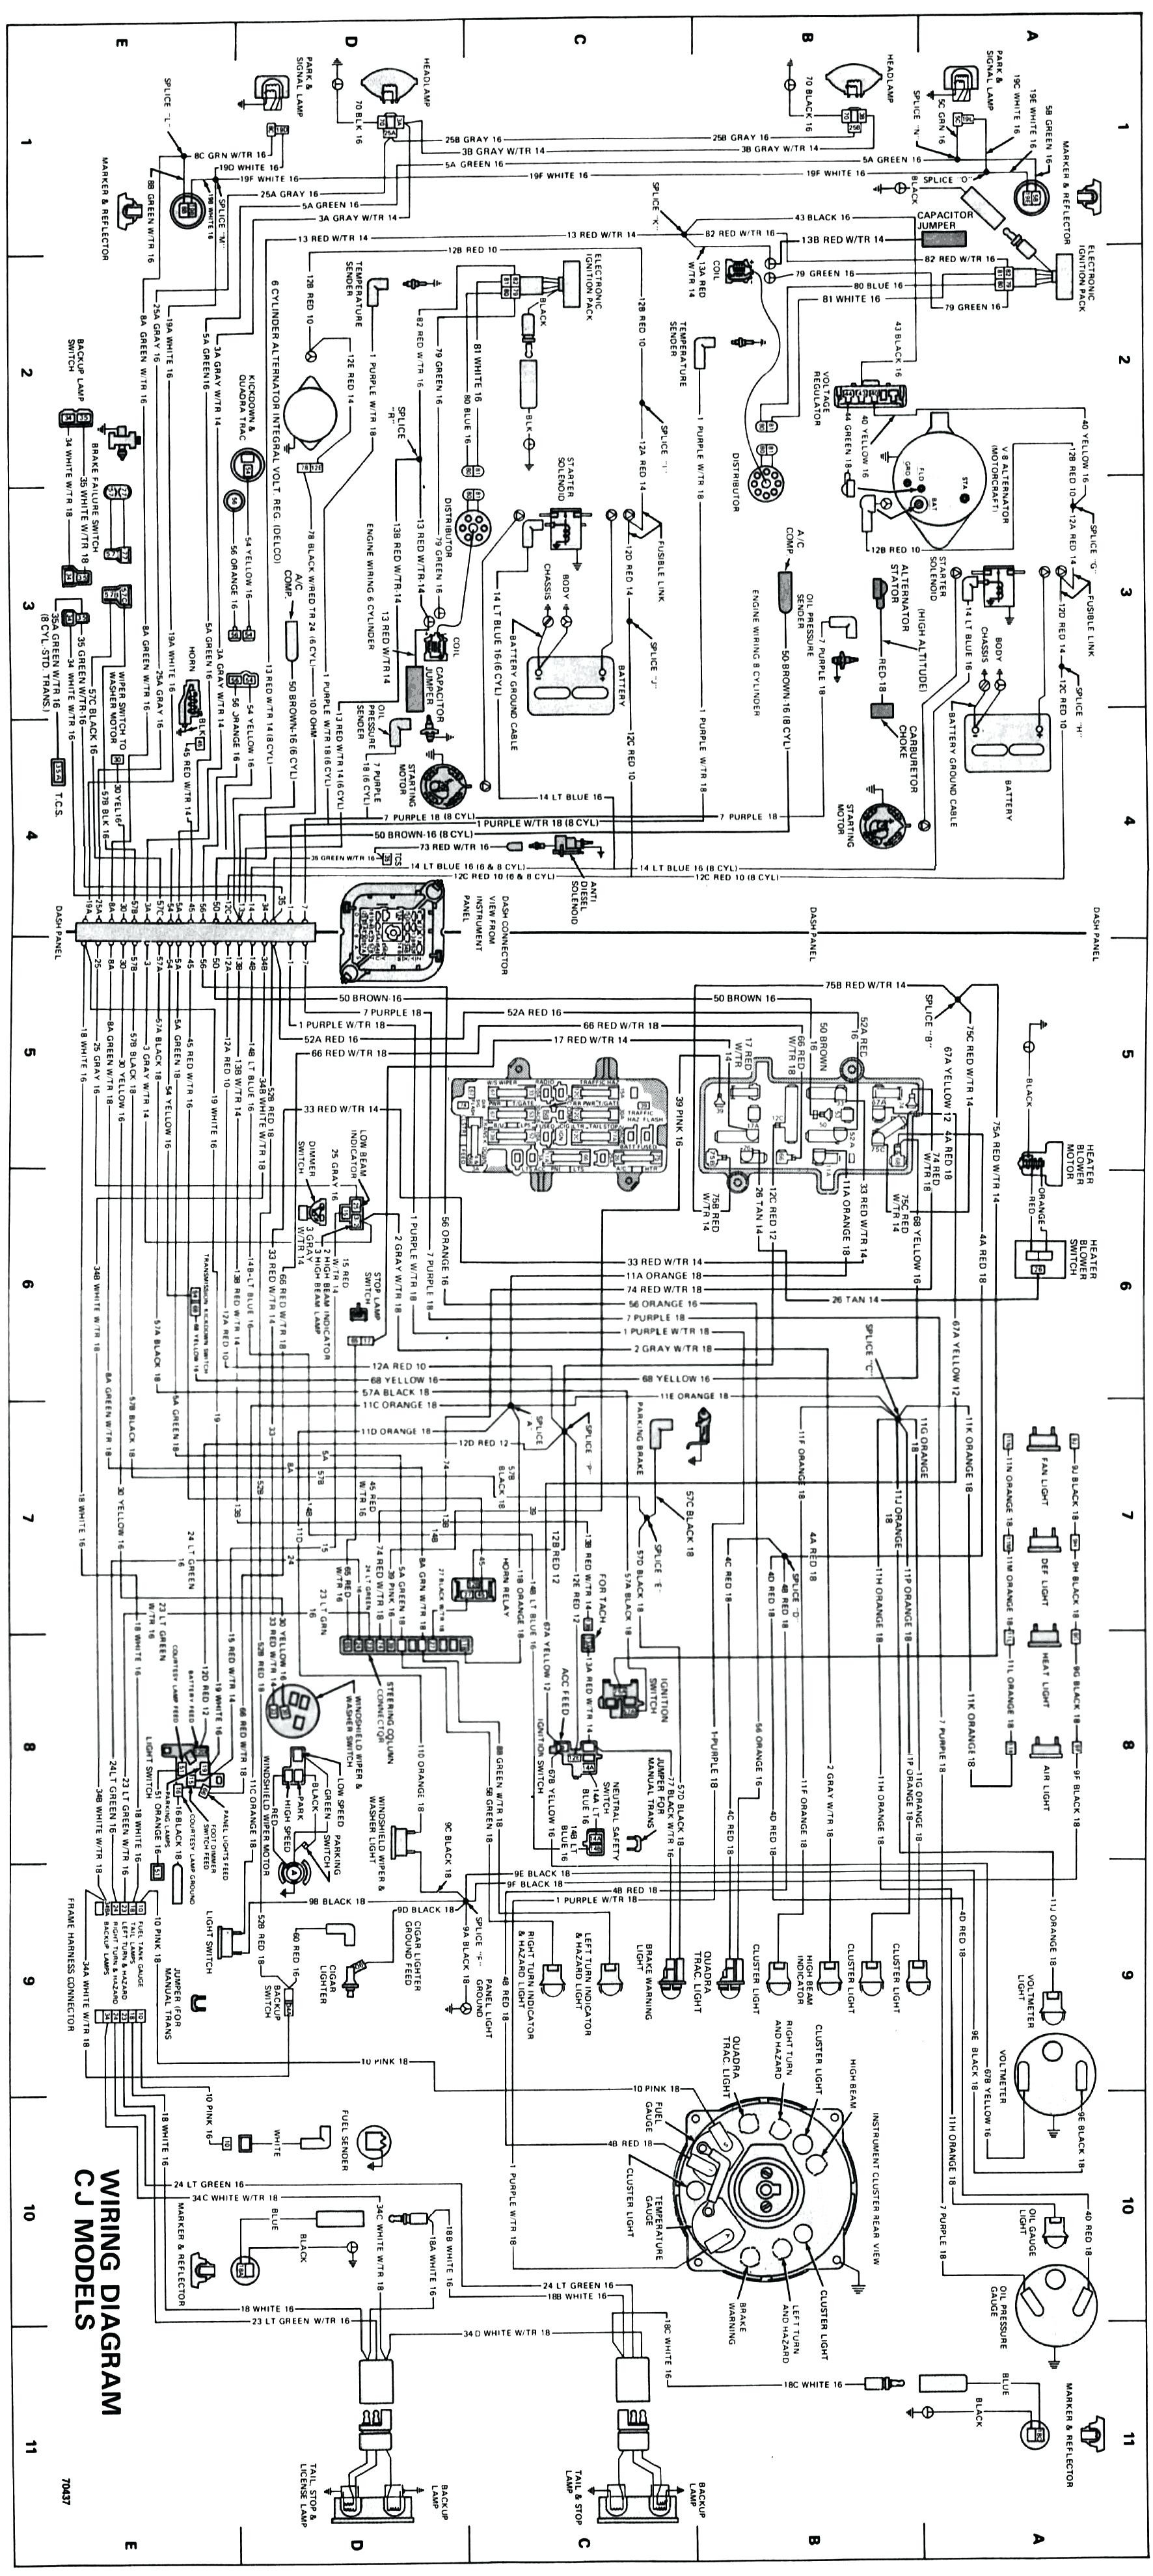 79 jeep cj wiring diagram - gm alternator wiring diagram 2 wire alternator  for wiring diagram schematics  wiring diagram schematics